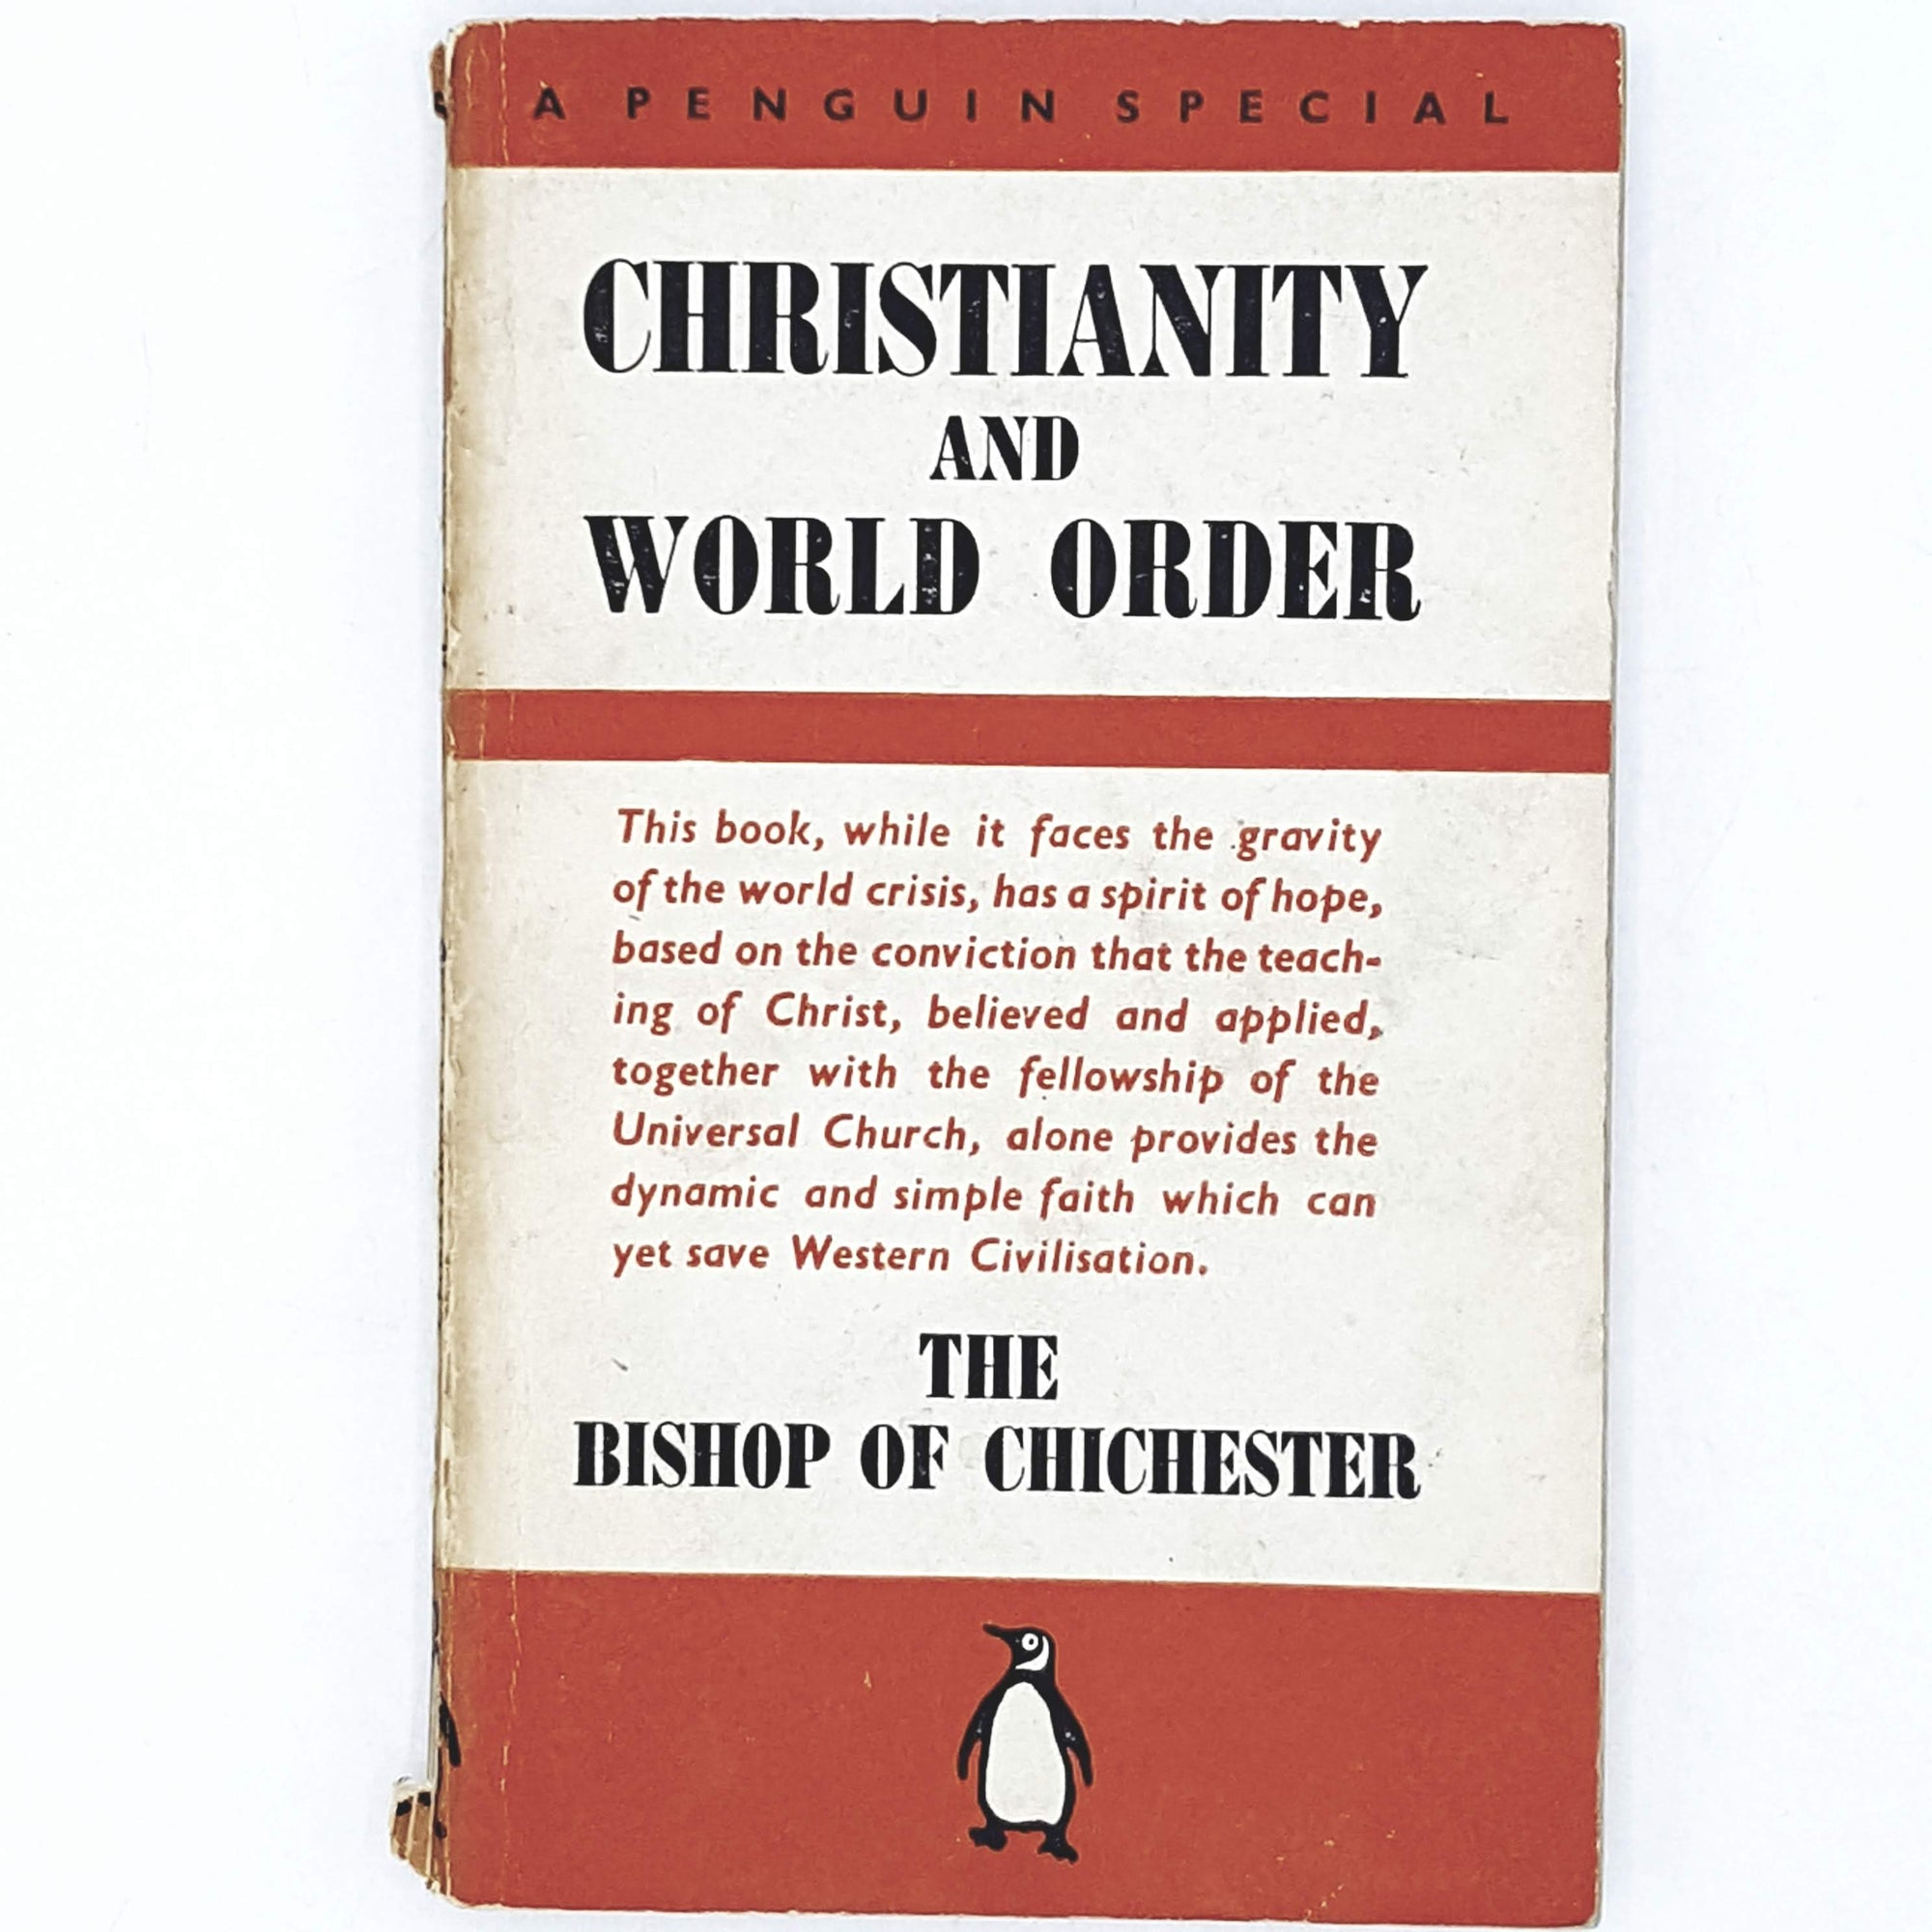 First Edition Christianity and World Order by The Bishop of Chichester 1940